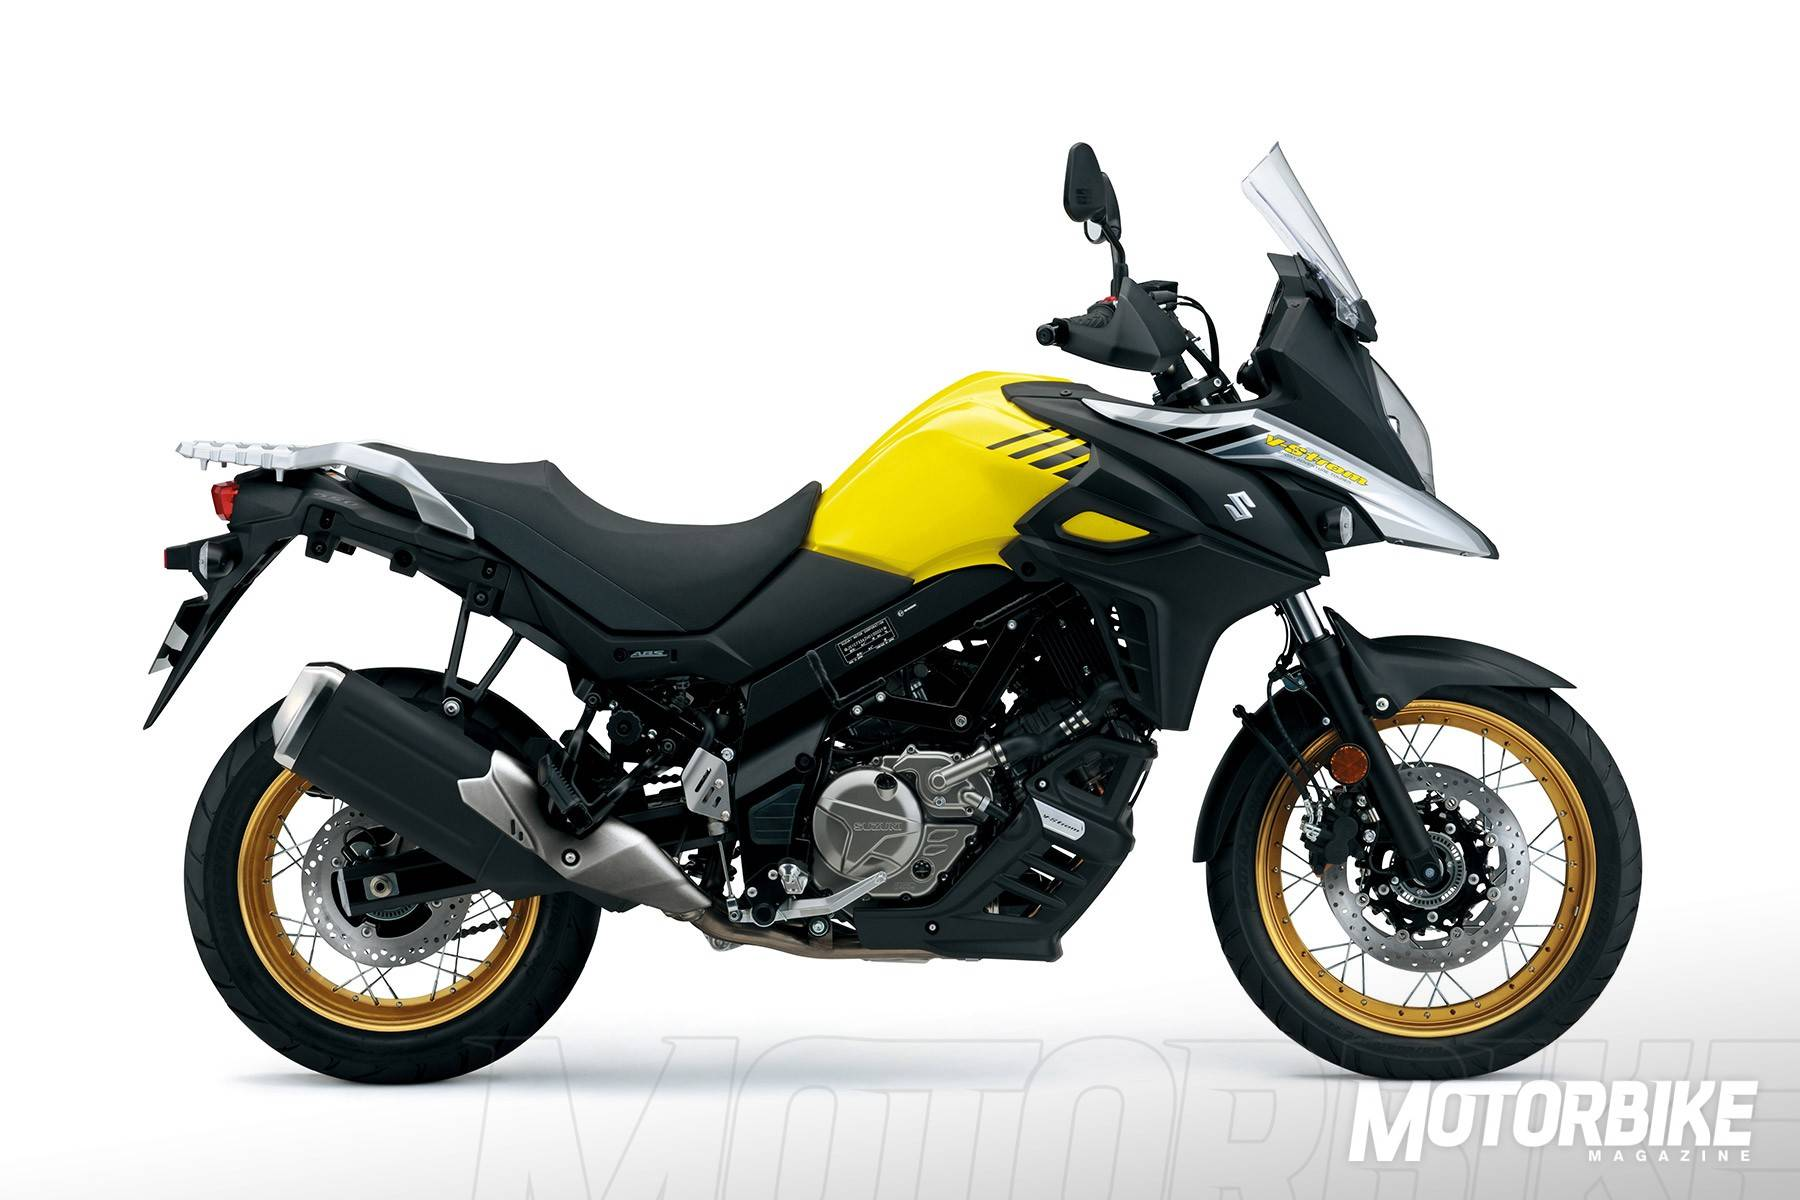 suzuki v strom 650 xt 2017 precio fotos ficha t cnica y motos rivales. Black Bedroom Furniture Sets. Home Design Ideas